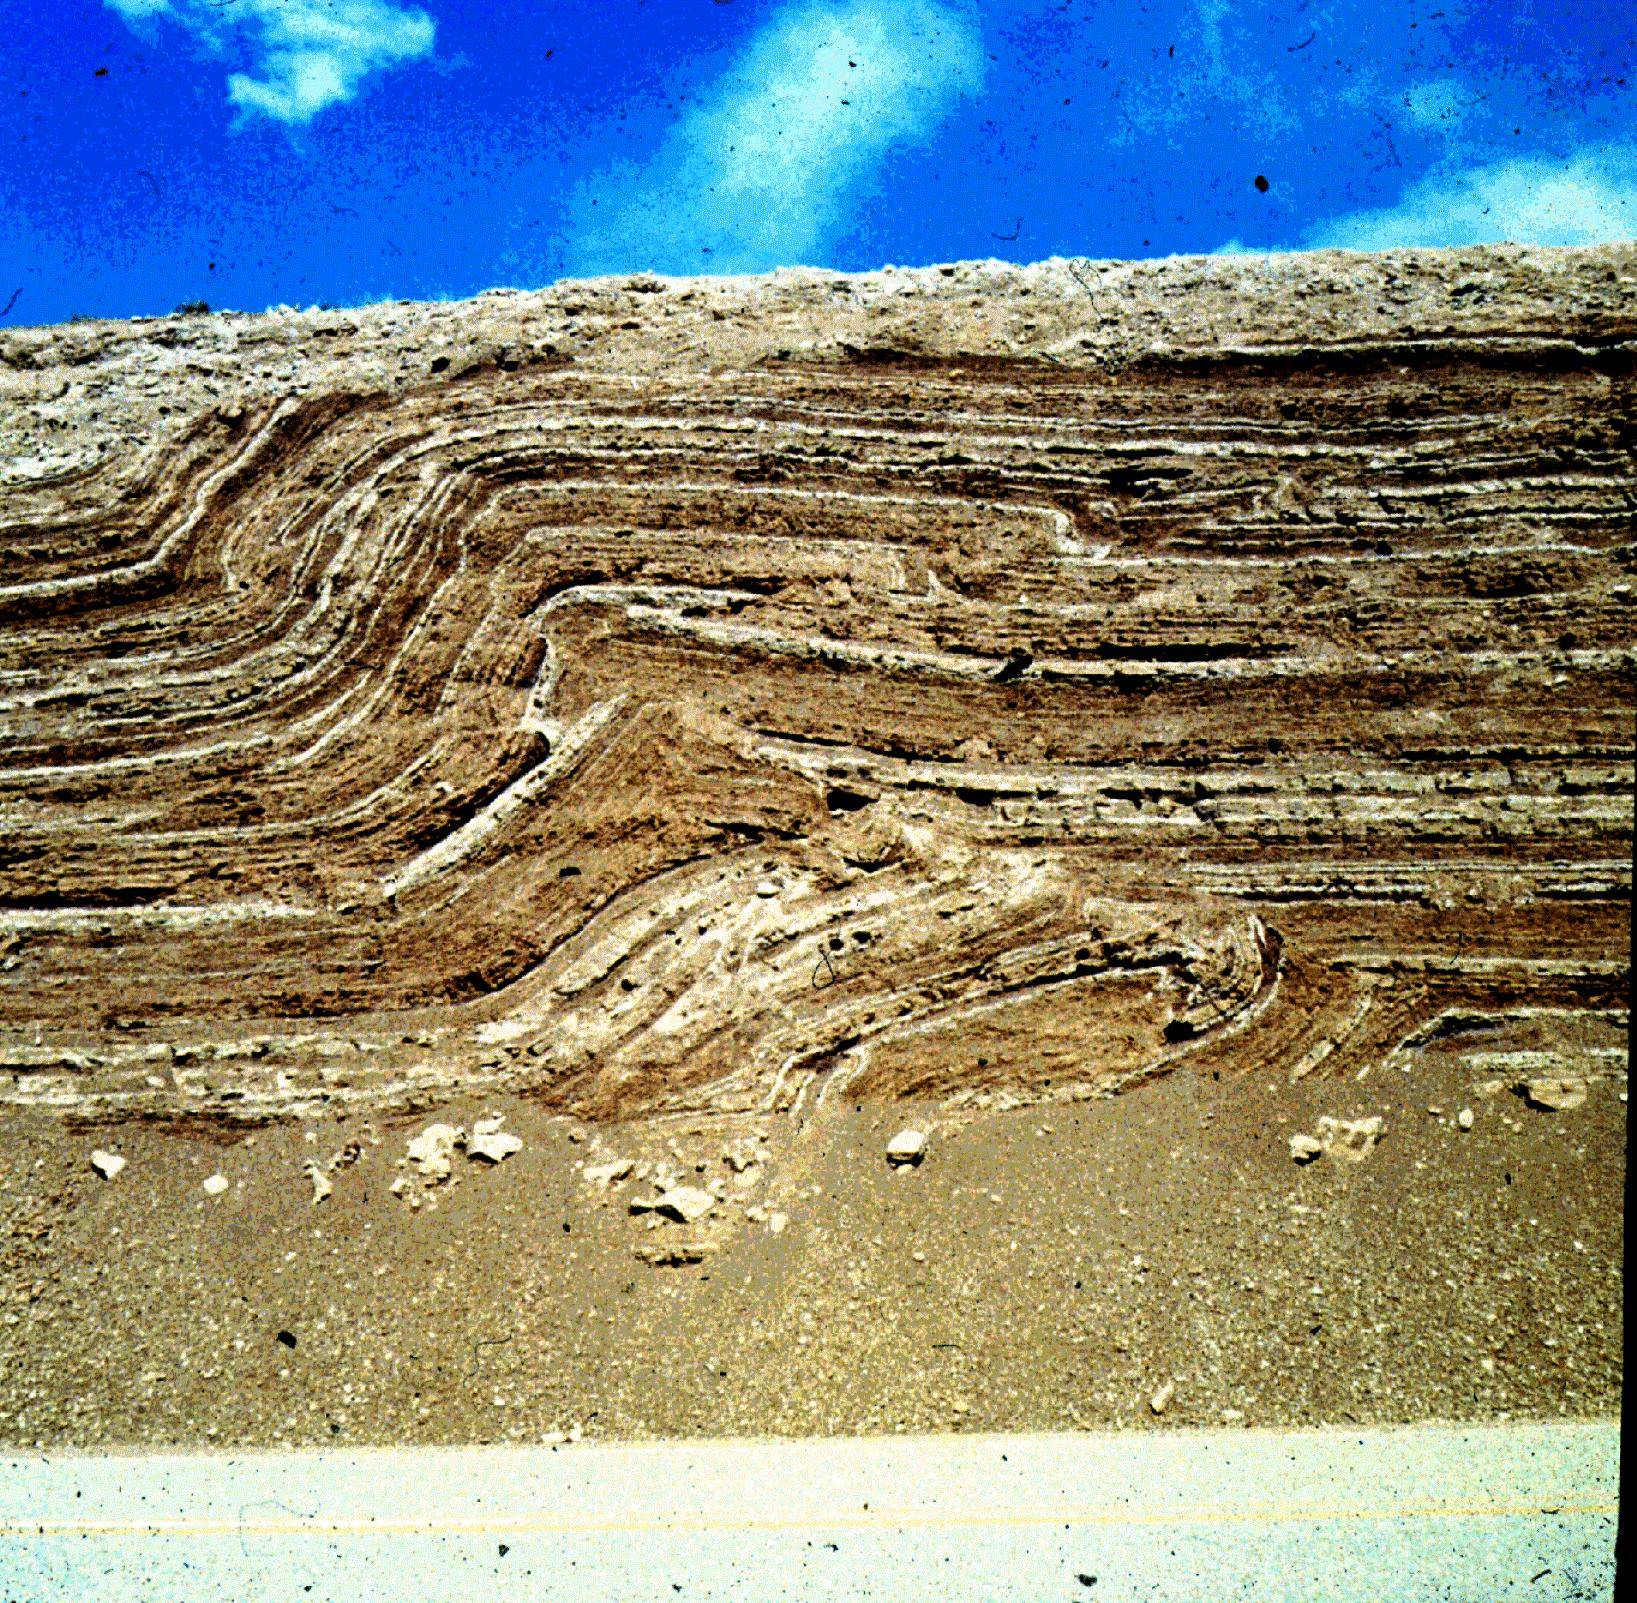 Images of folds and faults middle school science at for Geology dictionary